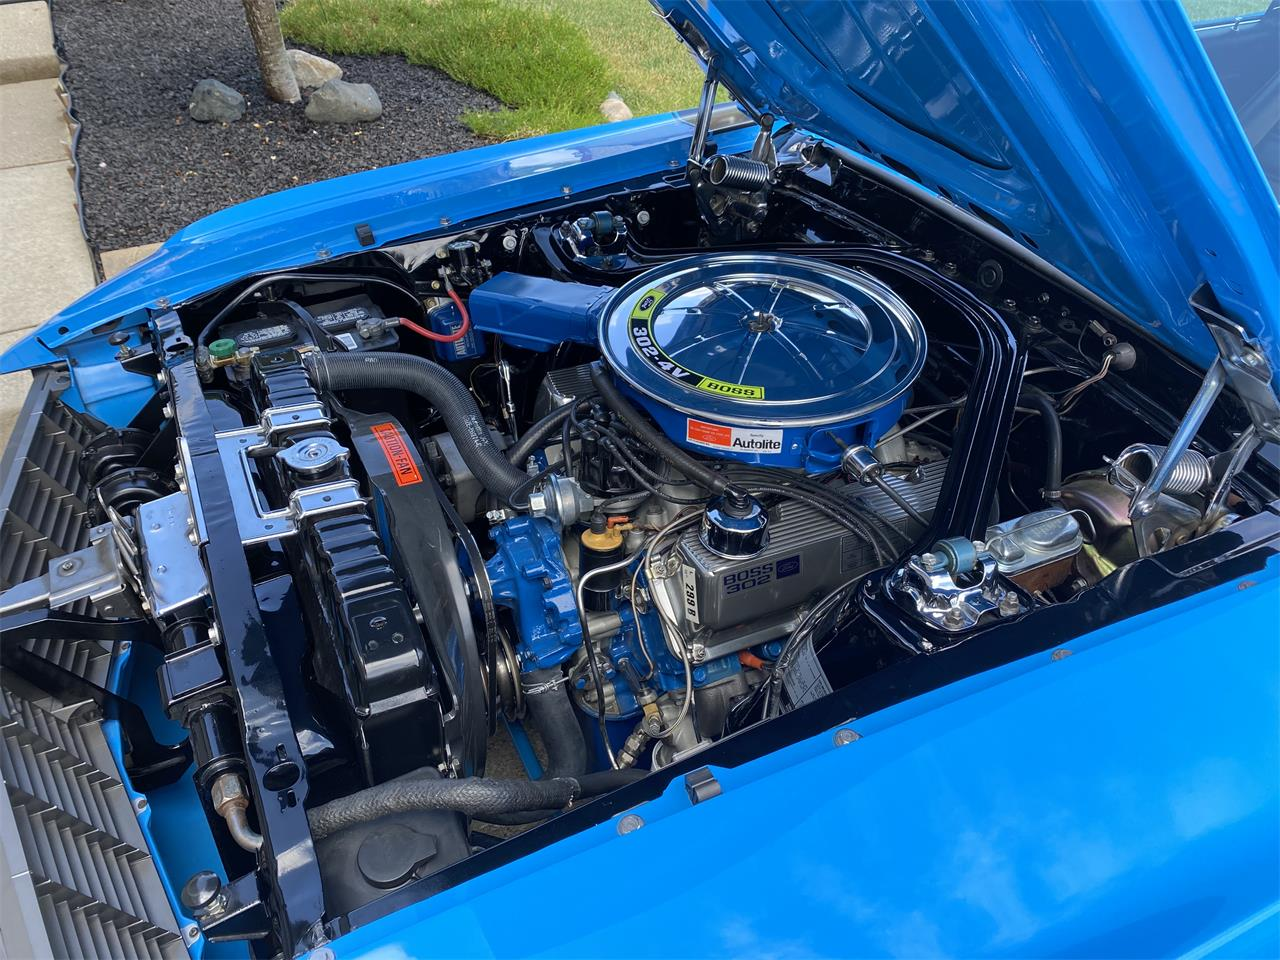 1970 Ford Mustang Boss 302 (CC-1359267) for sale in Chesterfield, Michigan